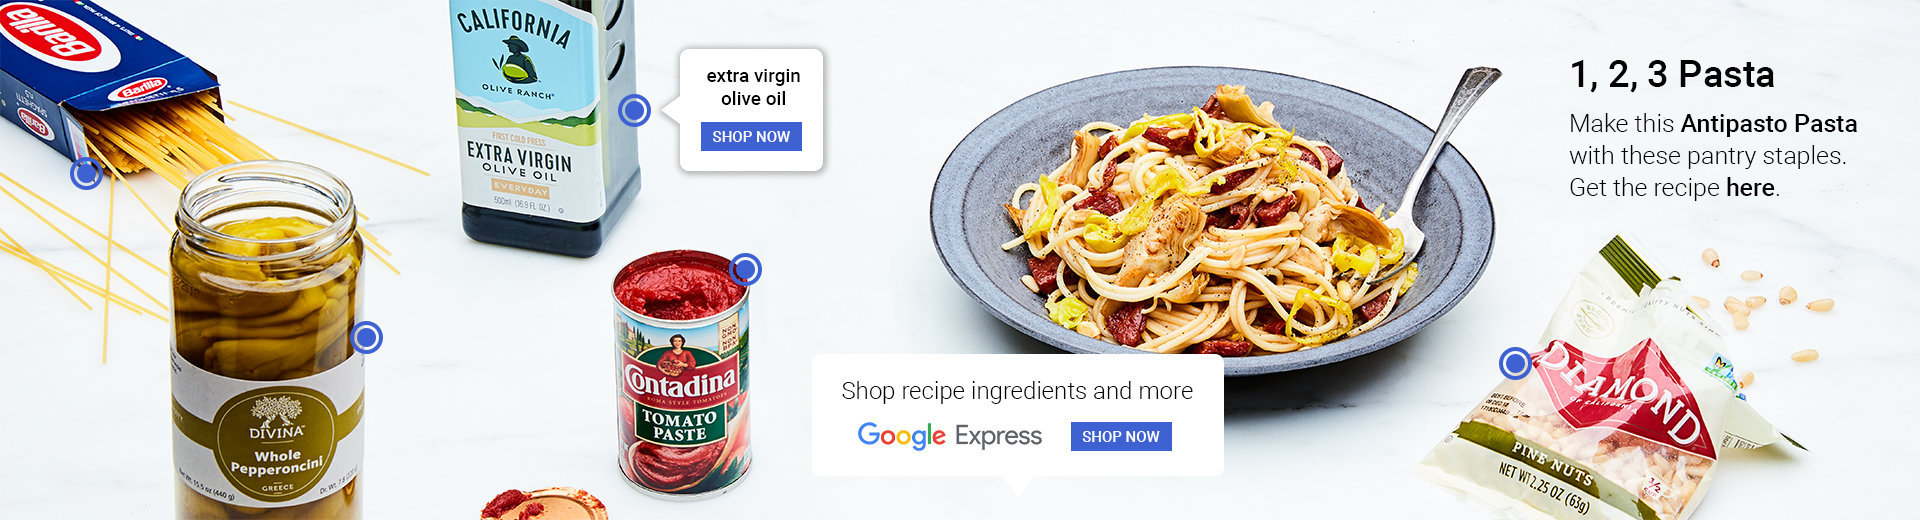 17_GoogleExpress_ShoppableCrown_Pasta_v07.jpg